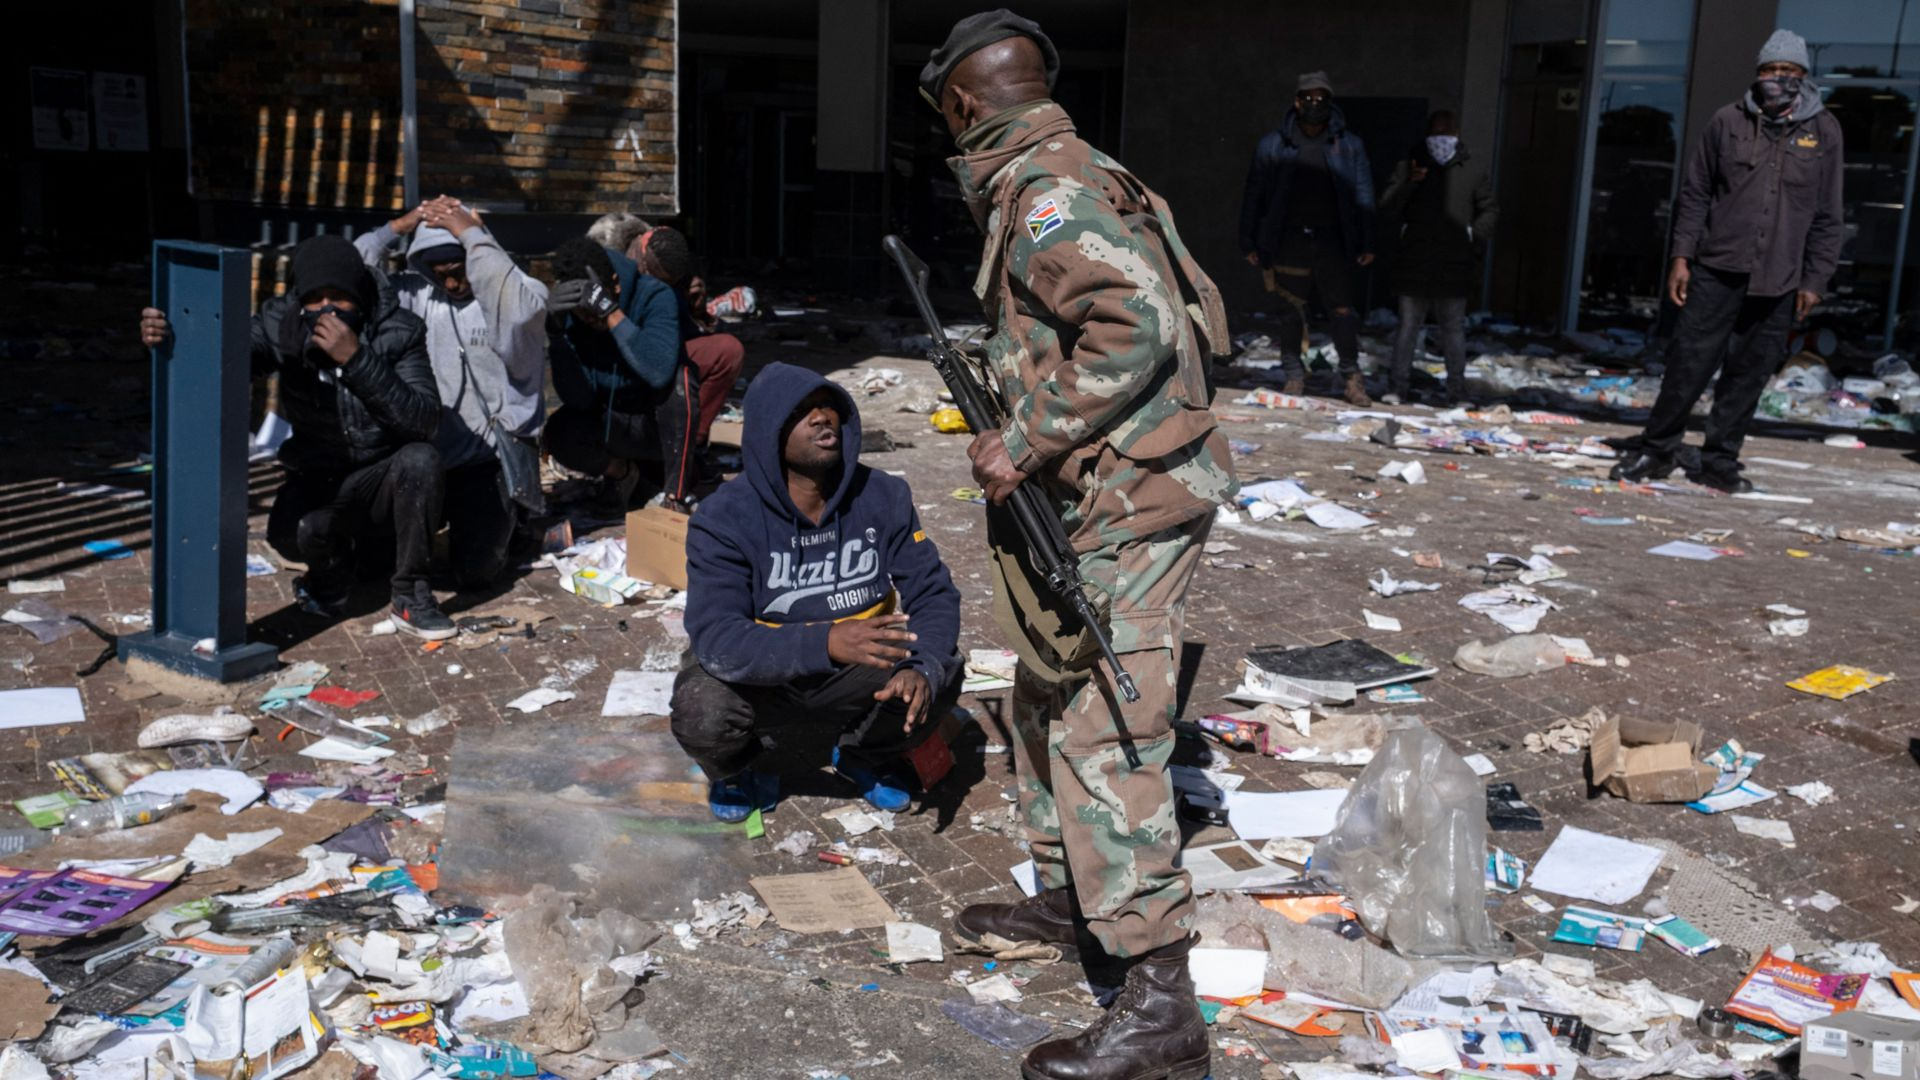 Death toll in South Africa riots rises to 72 - Axios